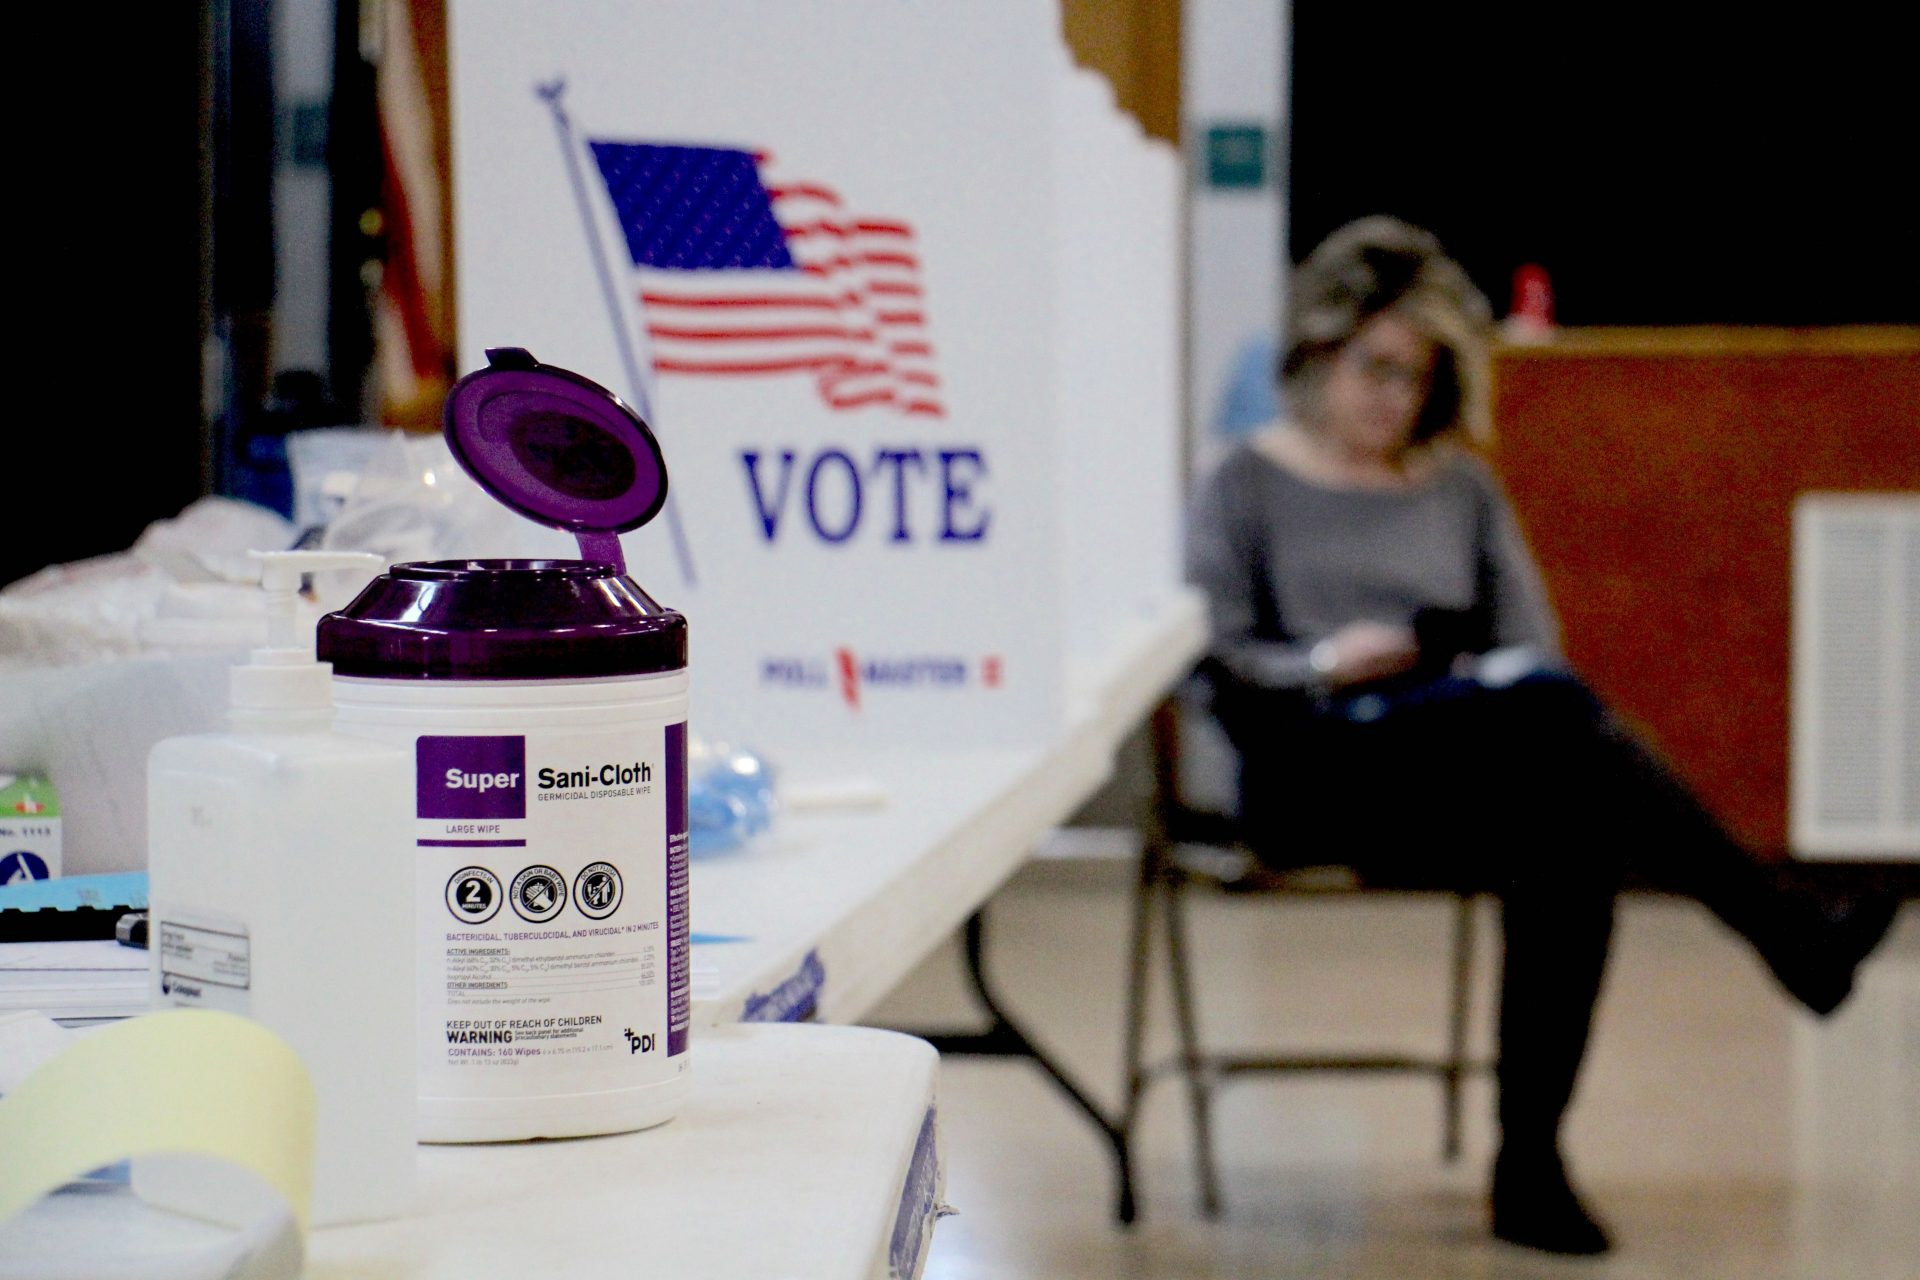 Poll worker Dina Sebold waits for voters at Cecelia Snyder Middle School in Bensalem during a special election for a vacant seat in the Pennsylvania House of Representatives. Hand sanitizer and wipes were made available to voters, many of whom brought their own pens.